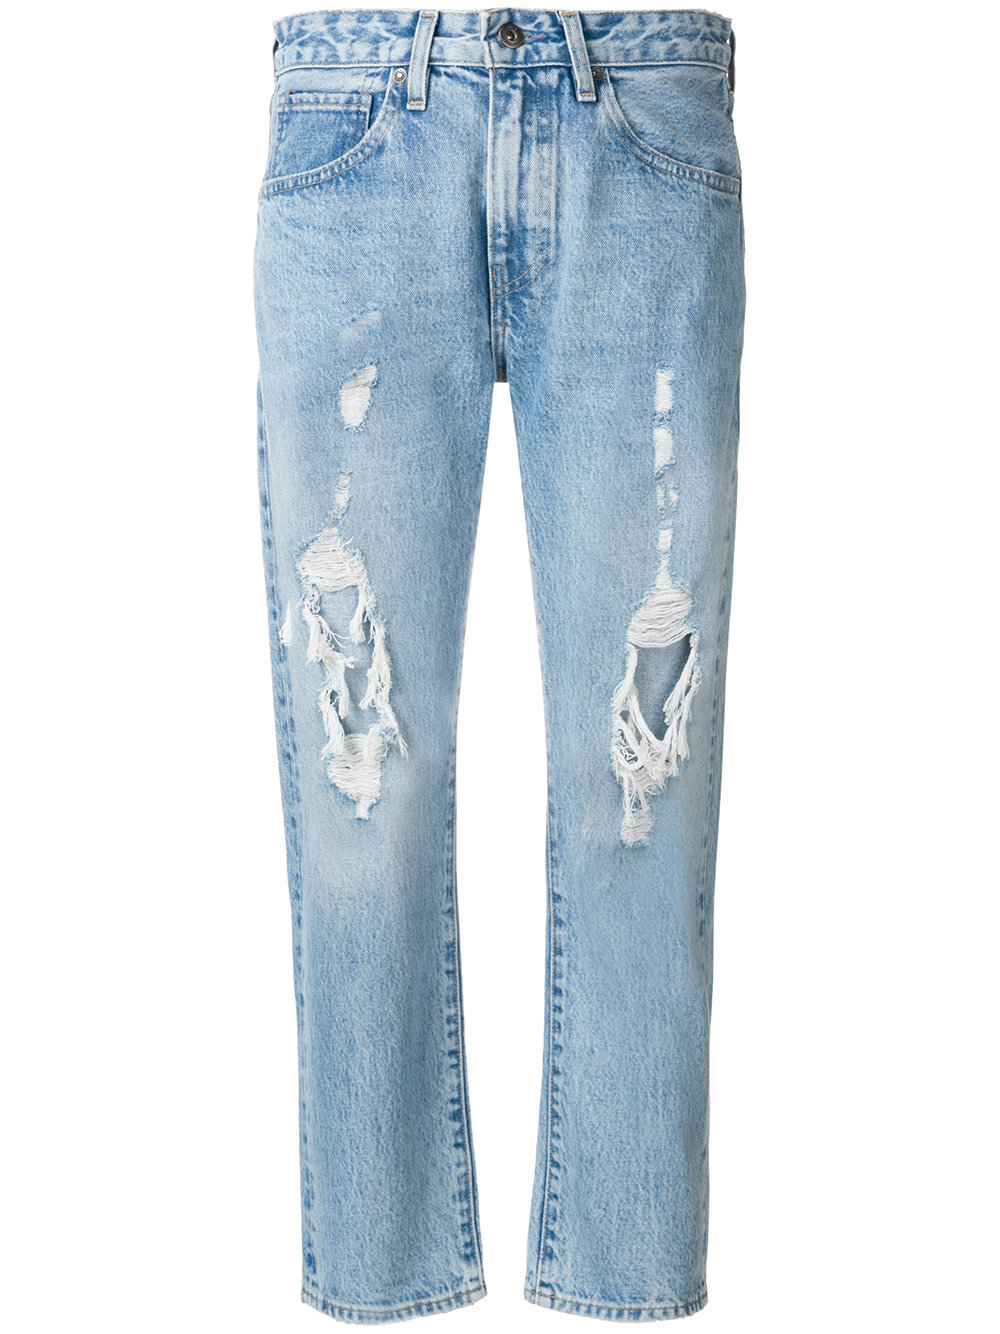 11c9b81ec38 Levi s  Made   Crafted destroyed cropped jeans - Blue - Glami.cz